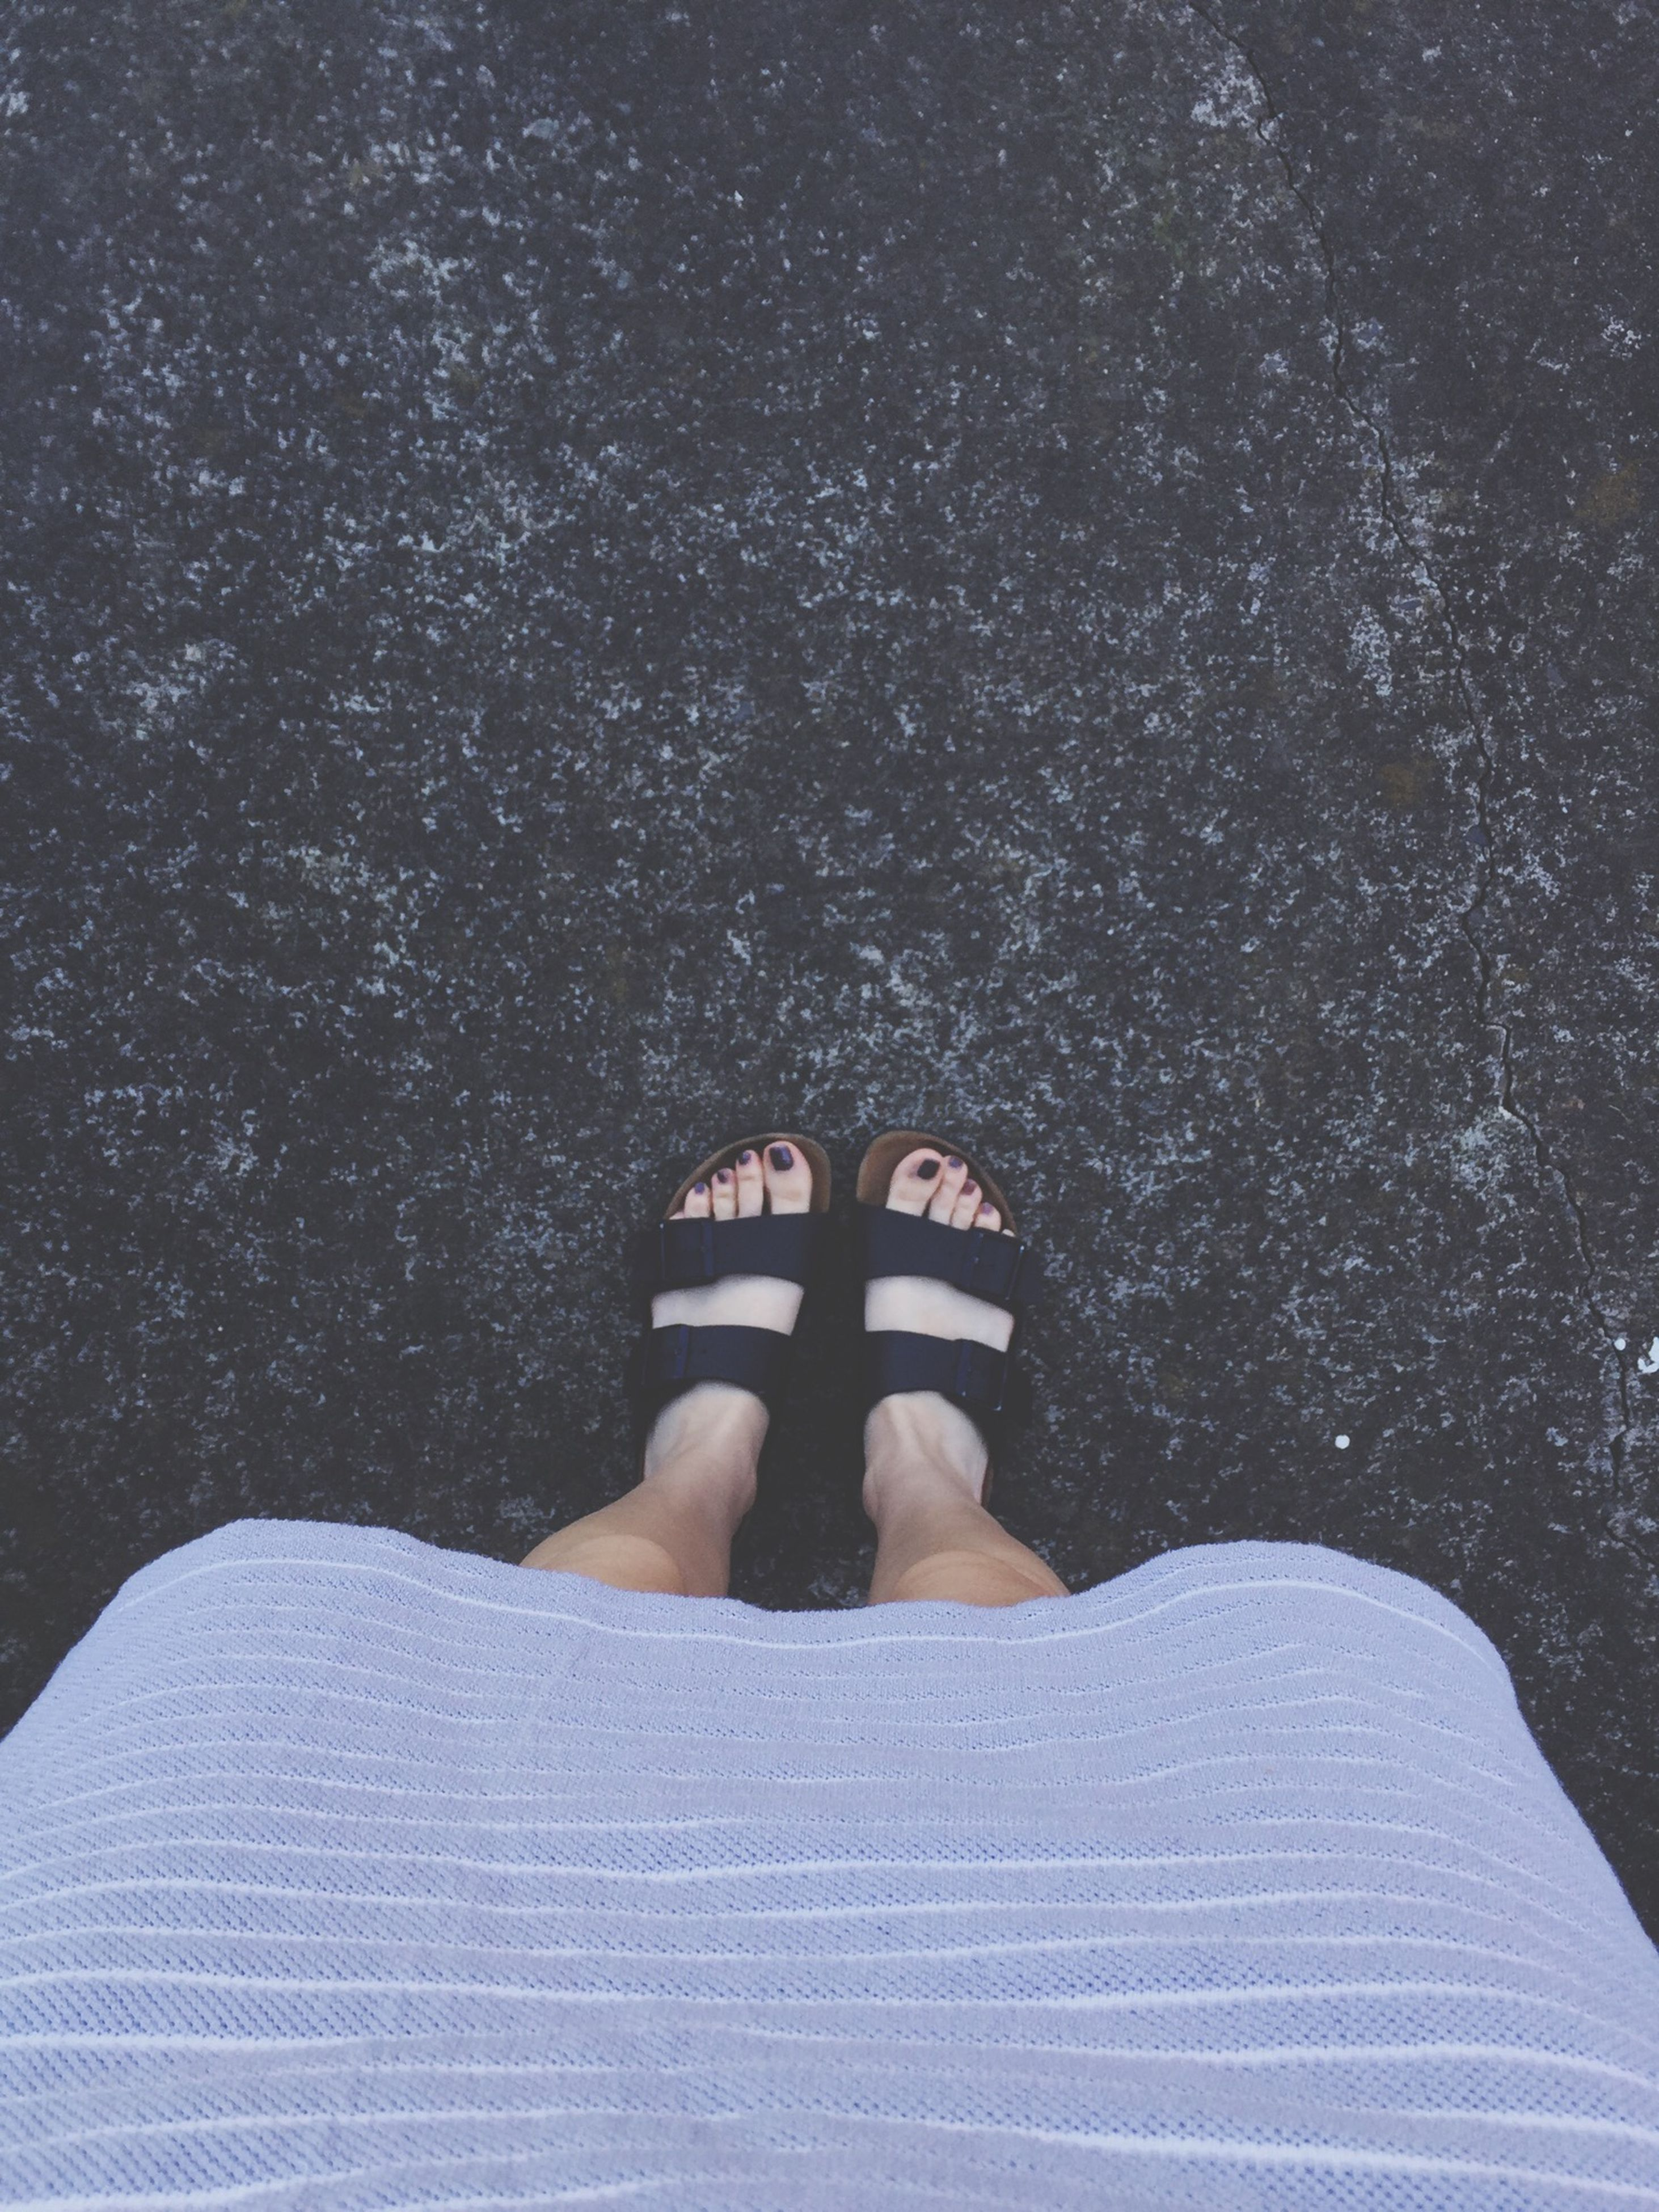 low section, person, personal perspective, lifestyles, shoe, human foot, high angle view, leisure activity, standing, footwear, men, part of, barefoot, relaxation, unrecognizable person, directly above